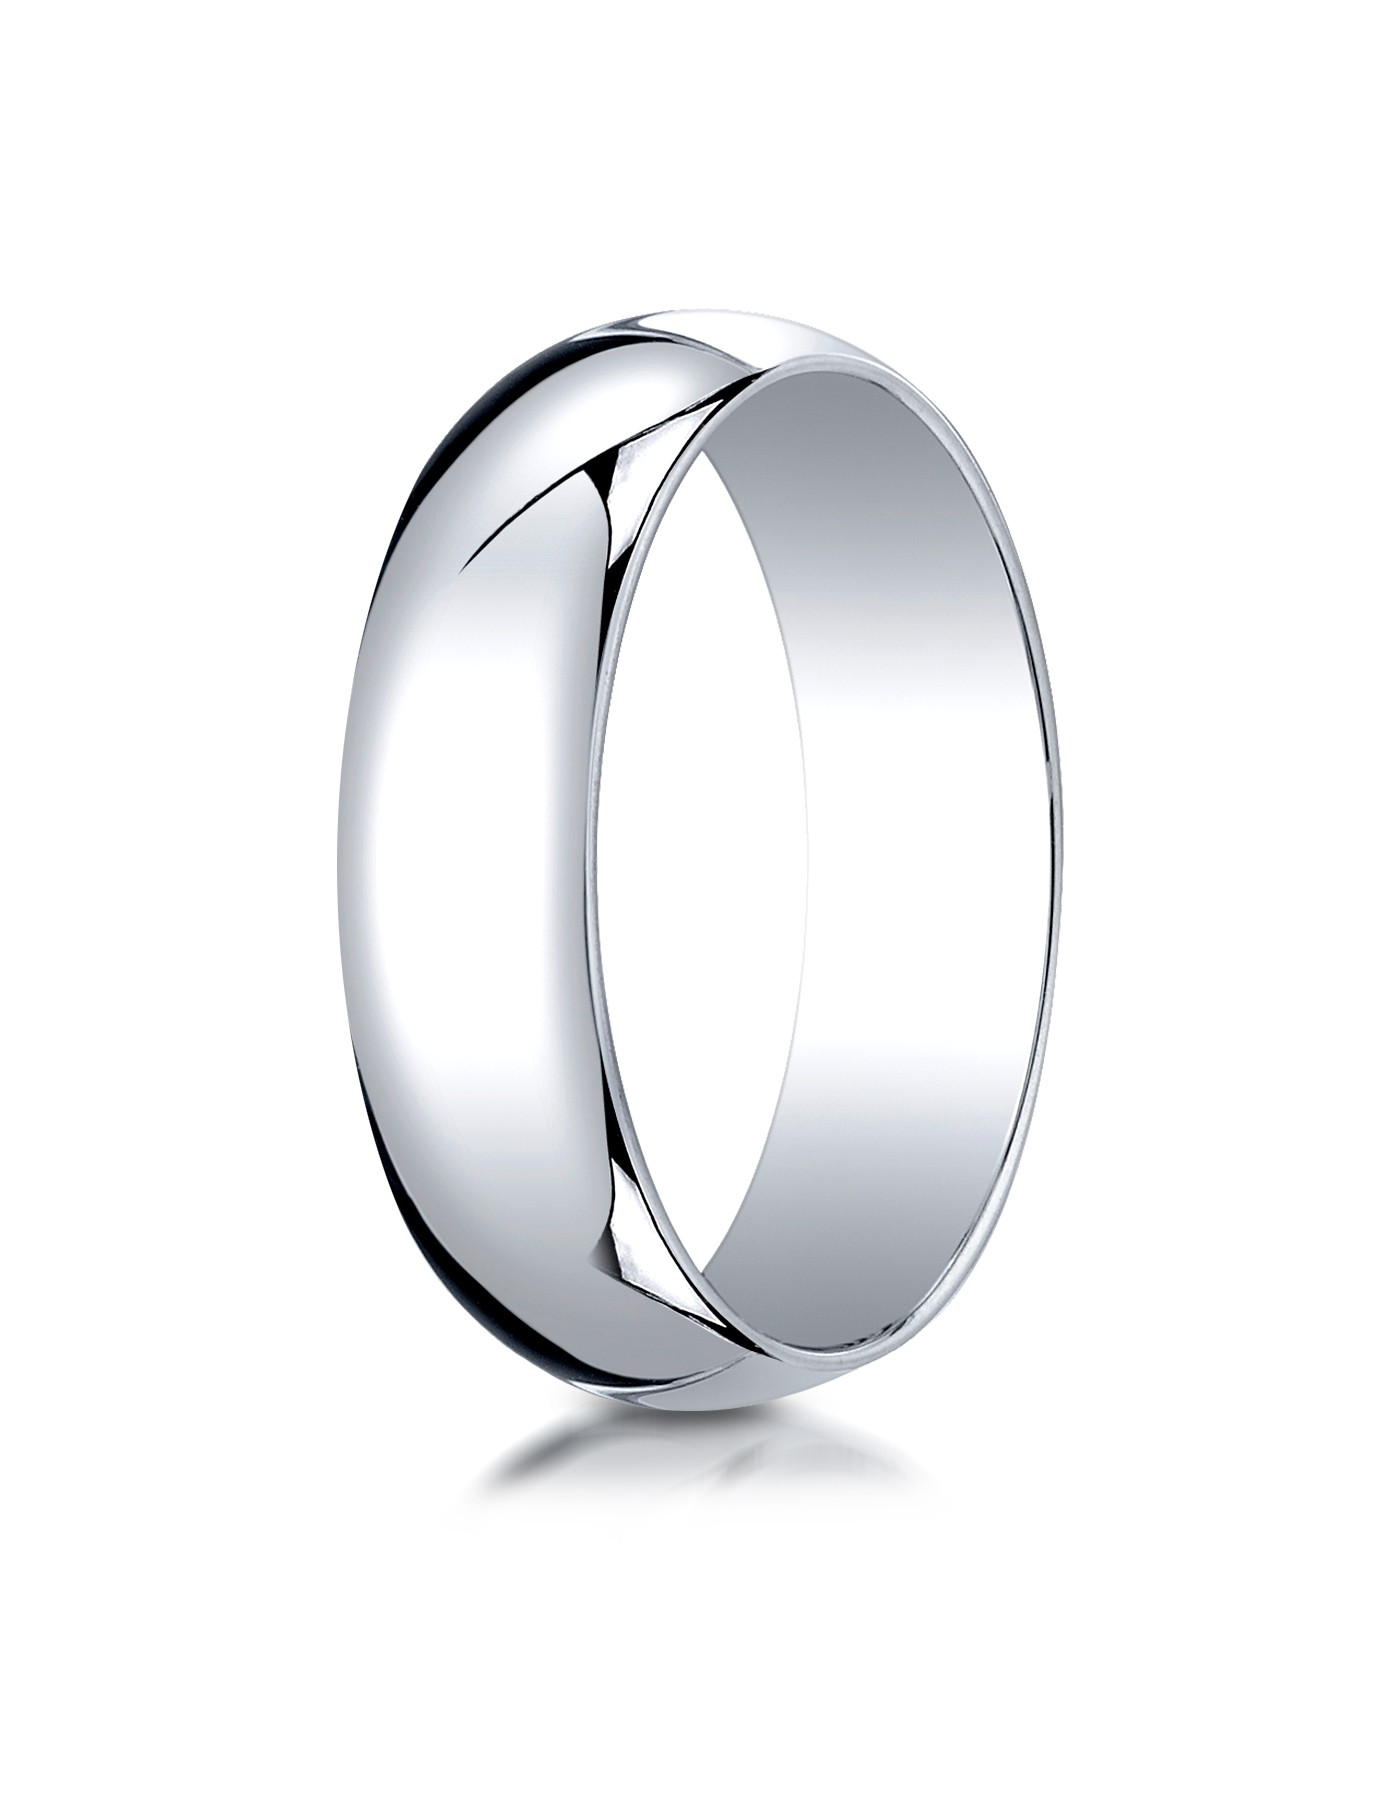 14k White Gold 6mm Slightly Domed Traditional Oval Ring